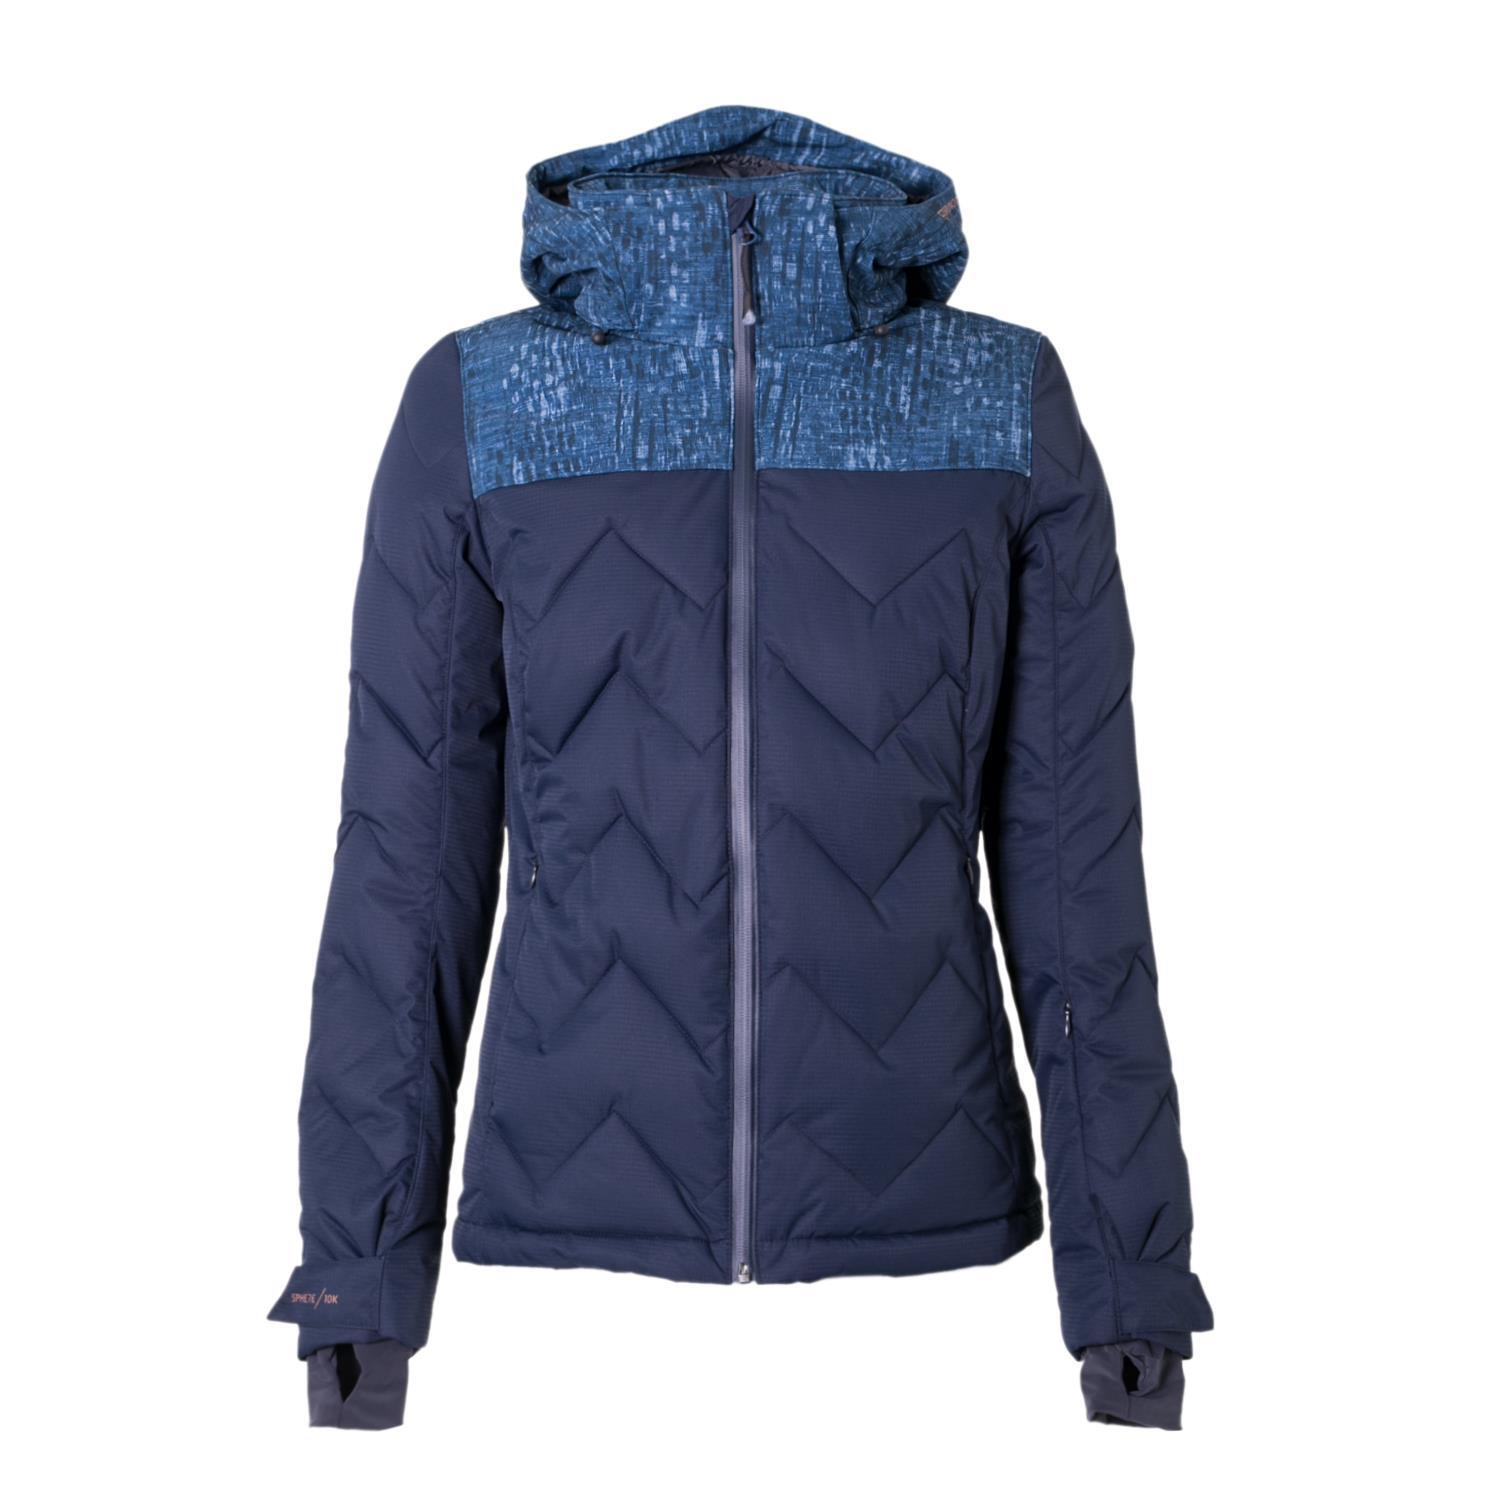 Brunotti Chaqueta Softshell Chaqueta Esquí Sirius W1819 women  Chaqueta Softshell  top brands sell cheap